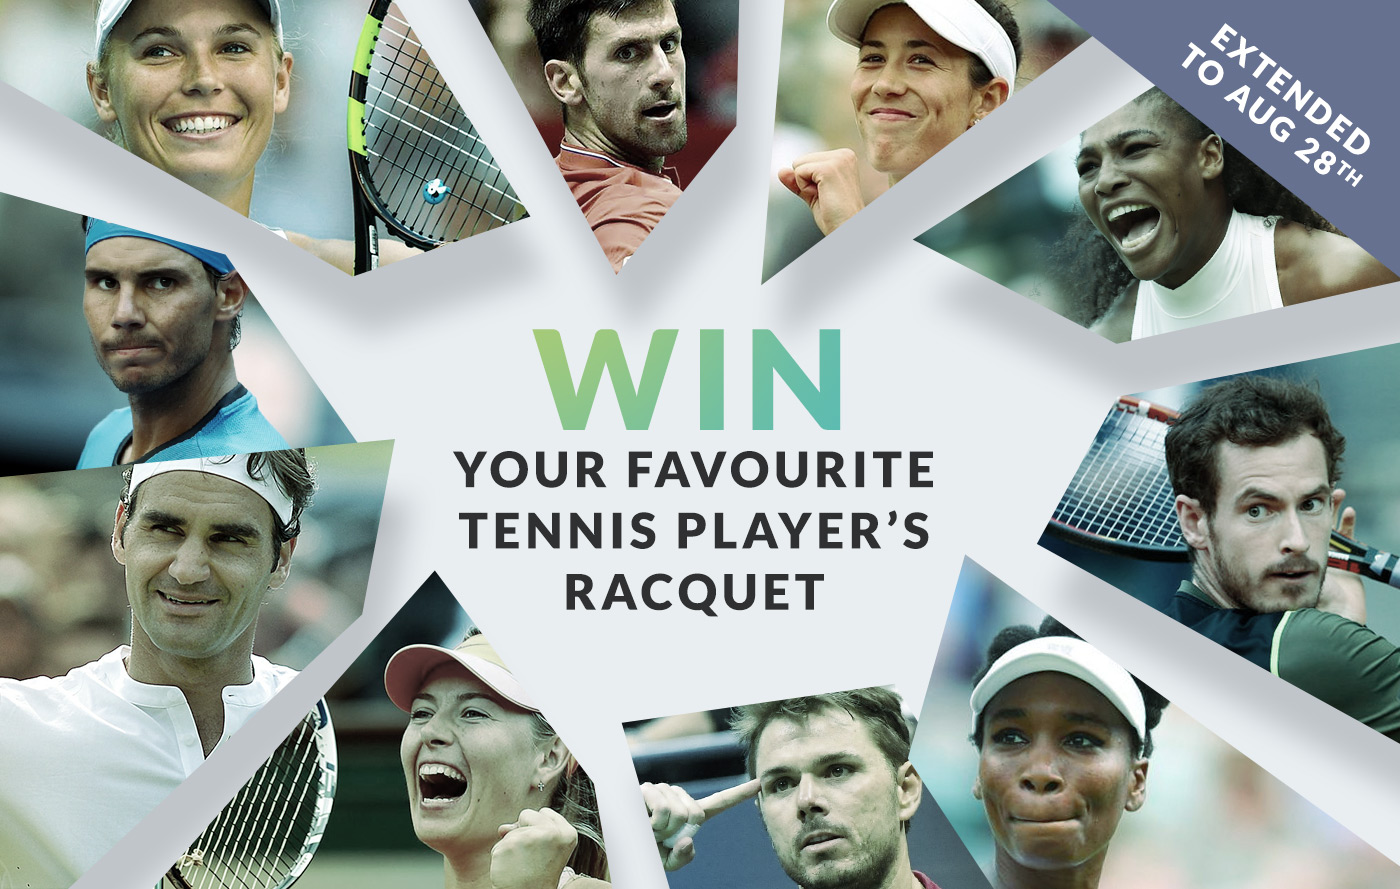 Win your favourite tennis player's racquet